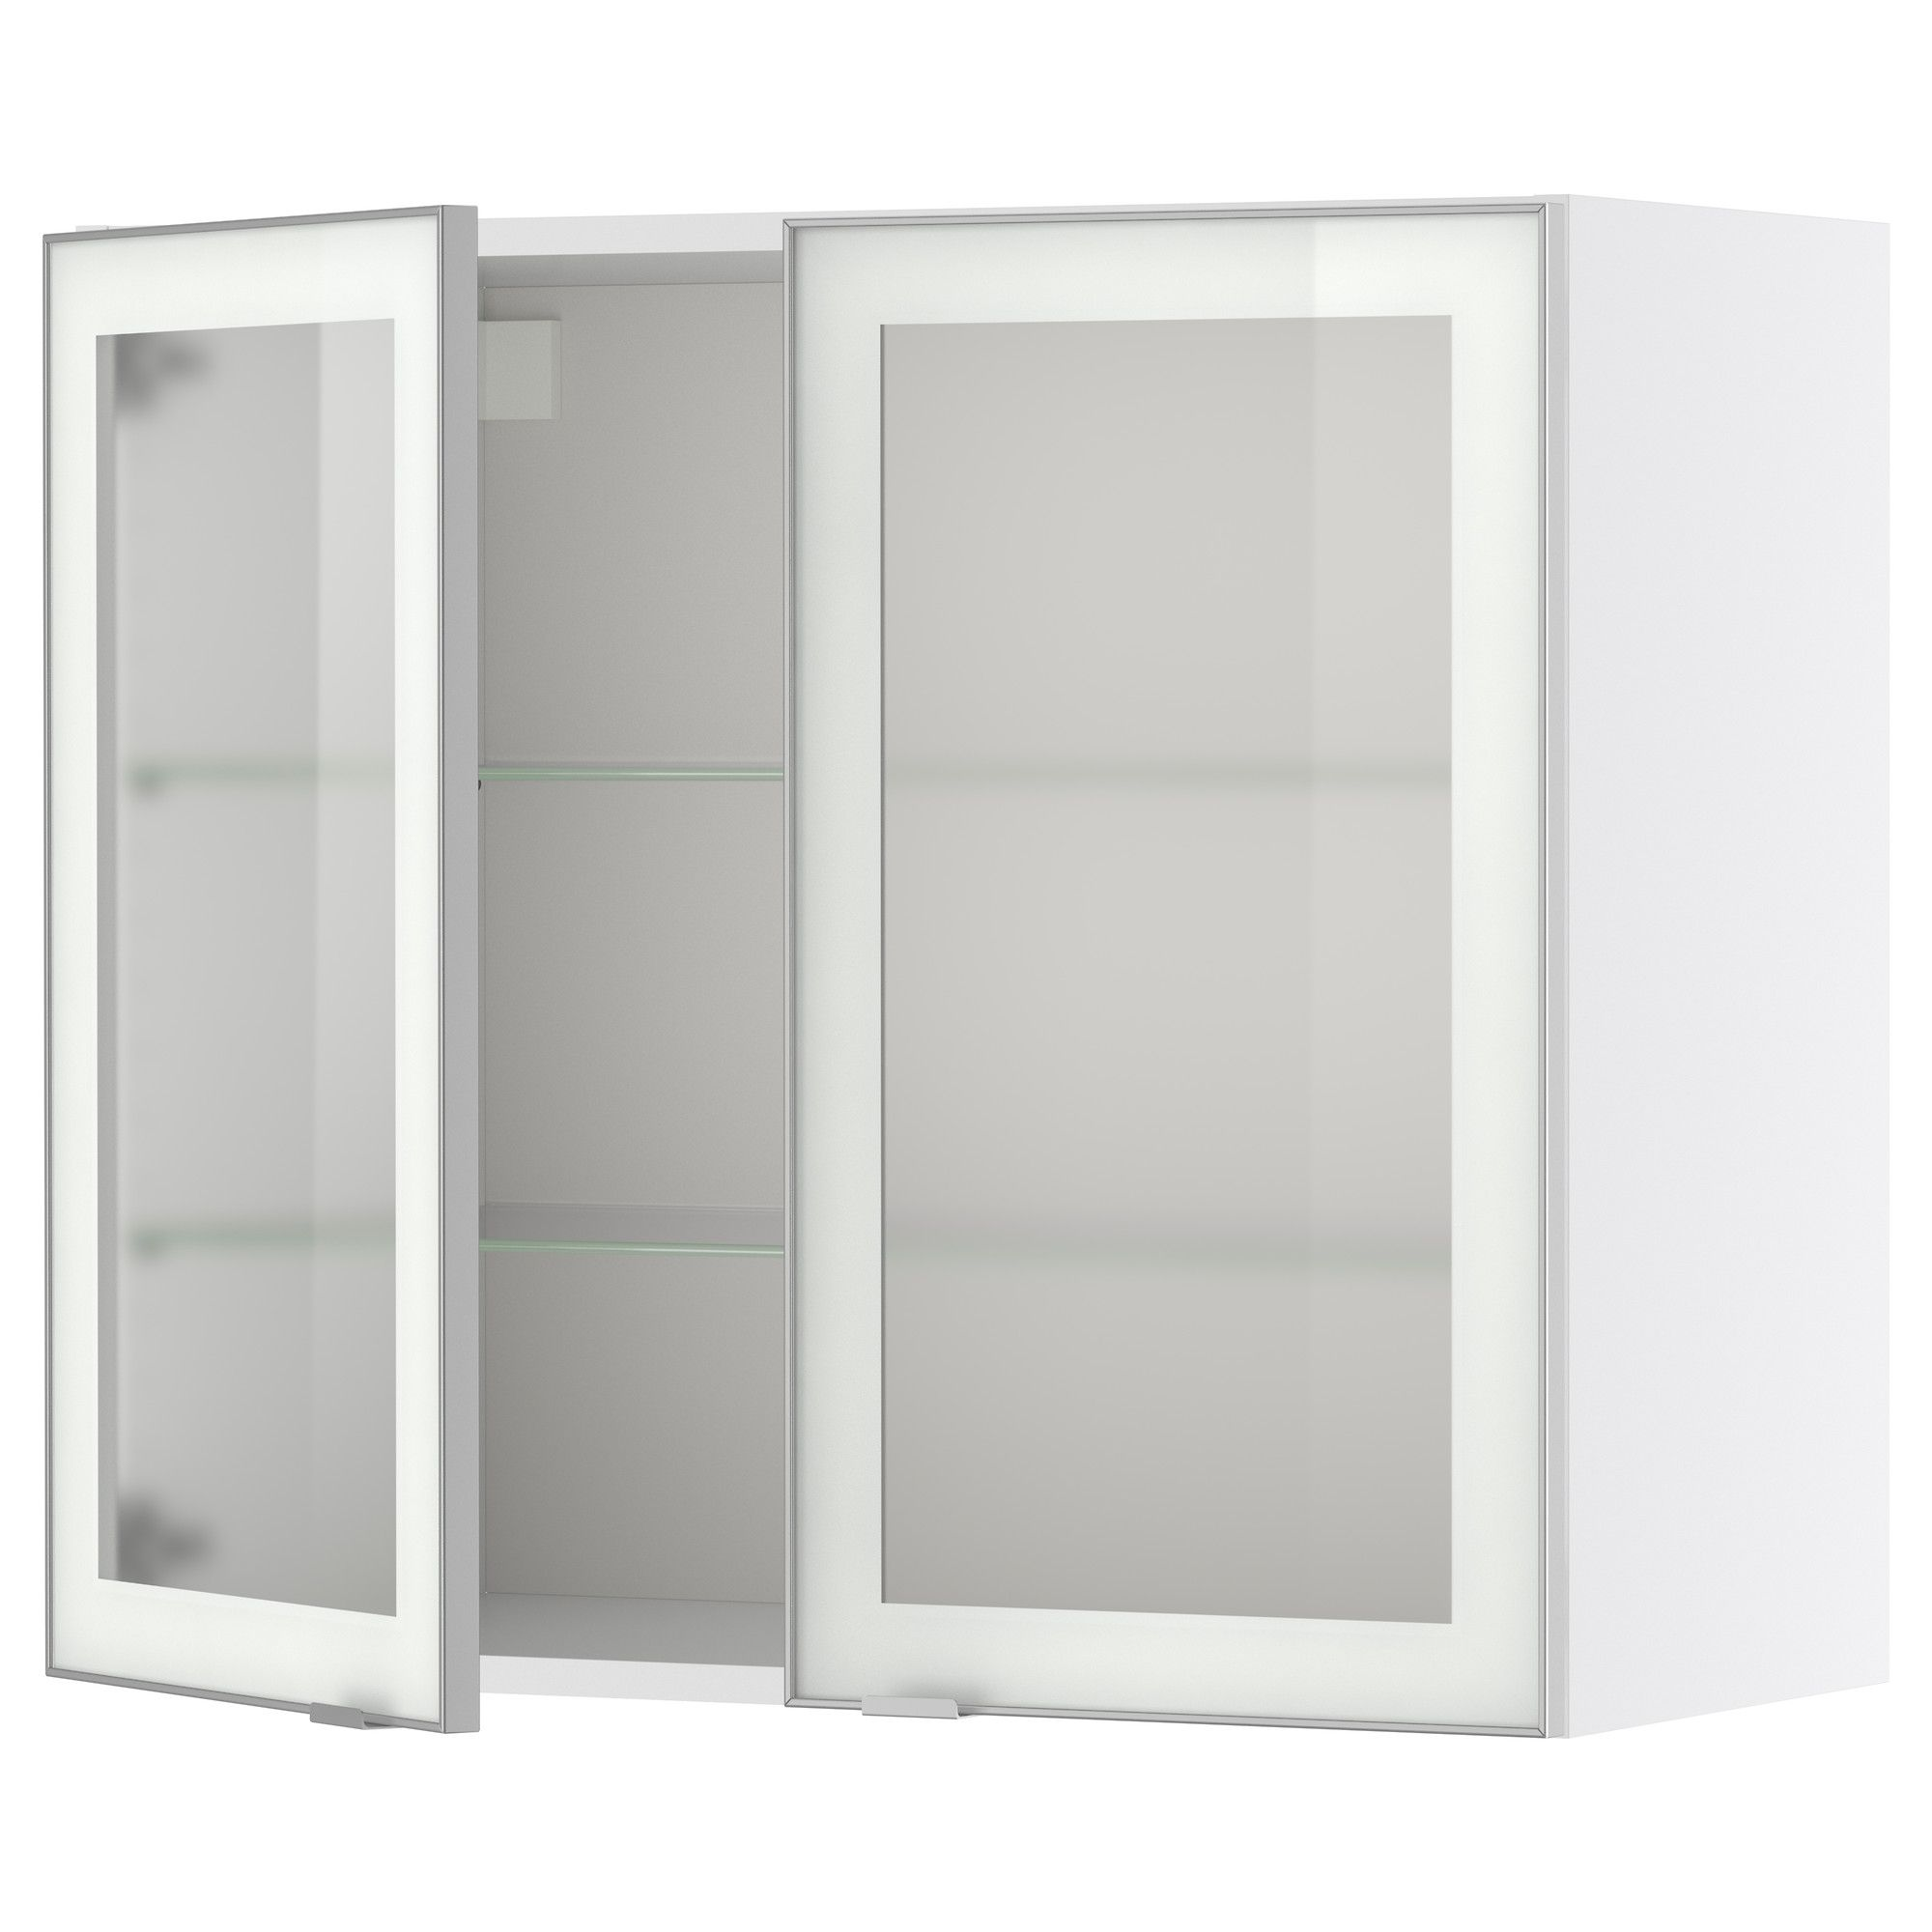 Australia Ikea Kitchen Wall Cabinets Glass Cabinet Doors Kitchen Wall Cabinets